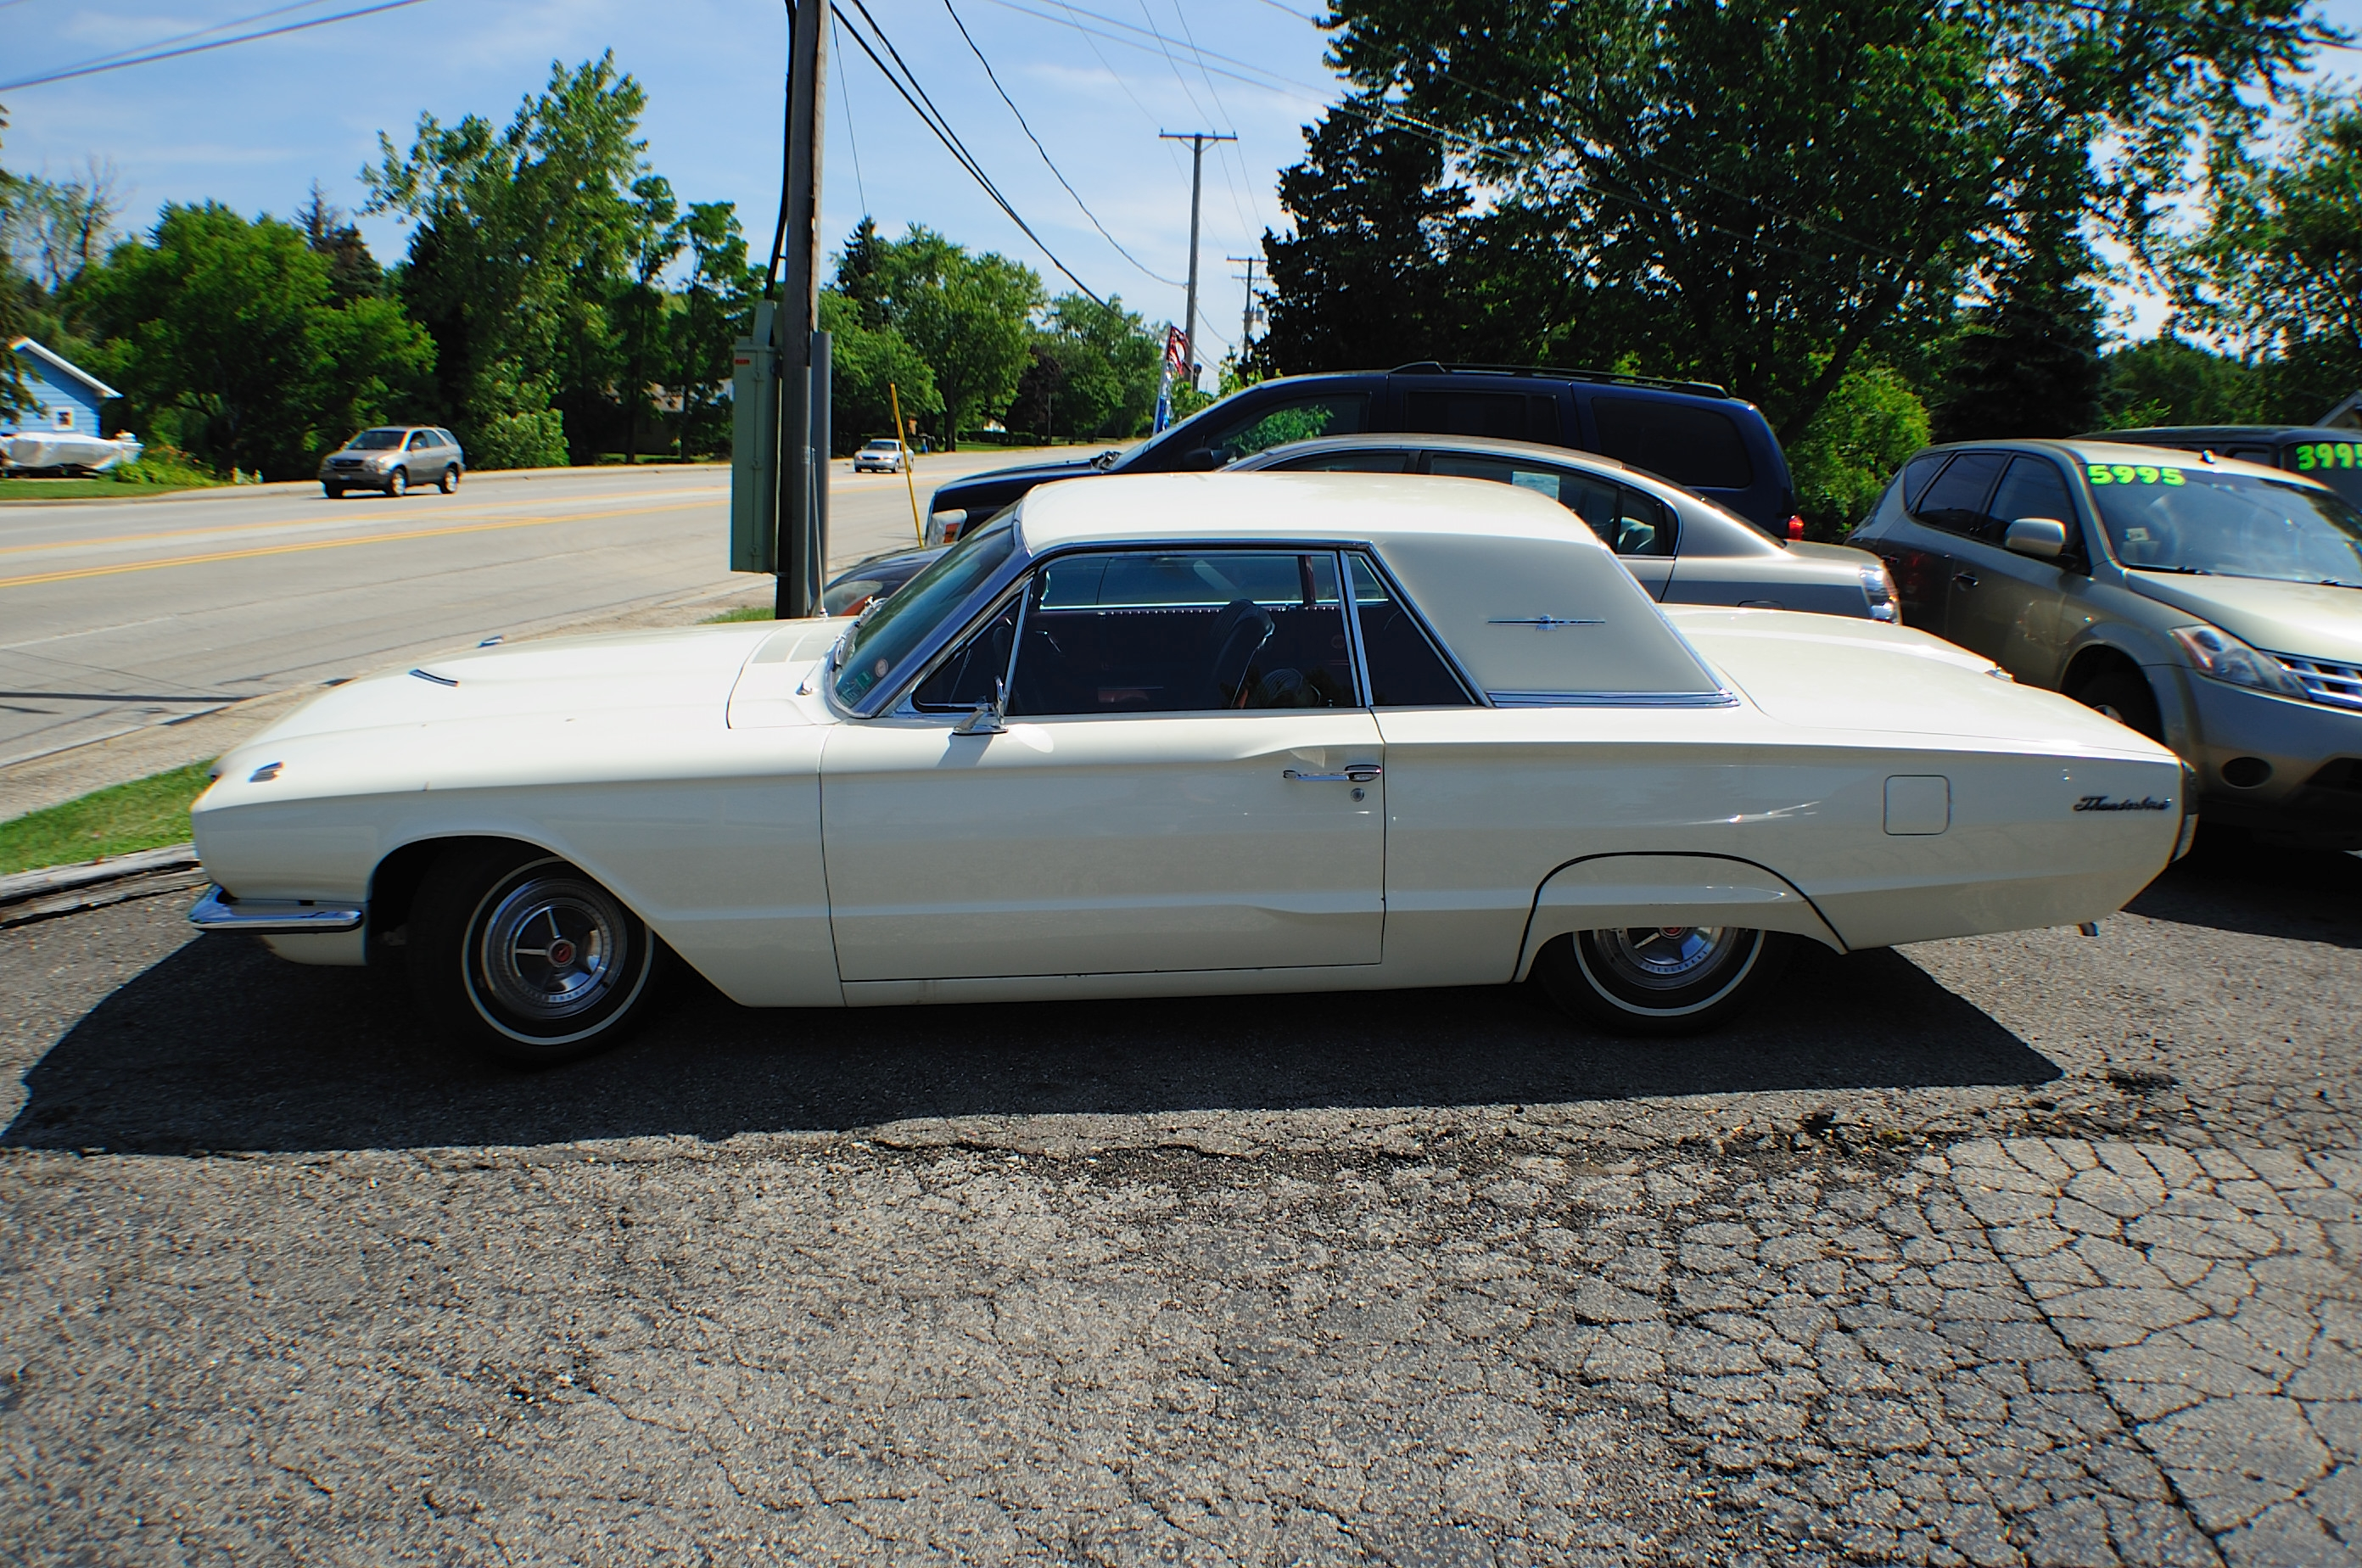 1966 Ford Thunderbird White Classic Sport Coupe used Car Sale Antioch Grayslake